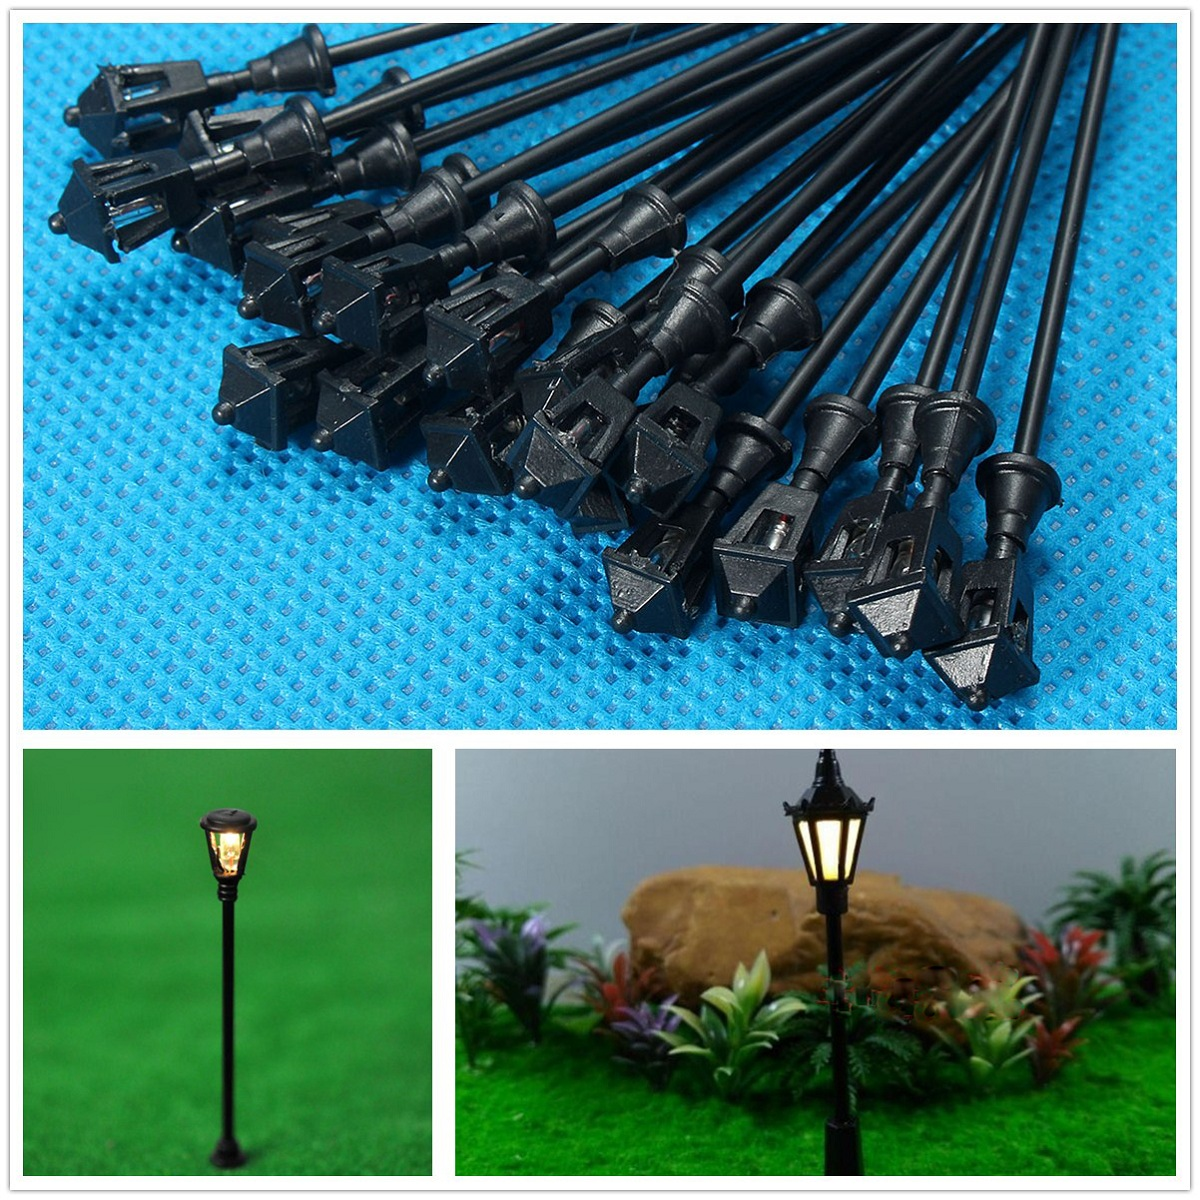 MOHOO 20pcs Model LED Street Lights Railway Train Layout Lamp Post HO Scale 1:100 by